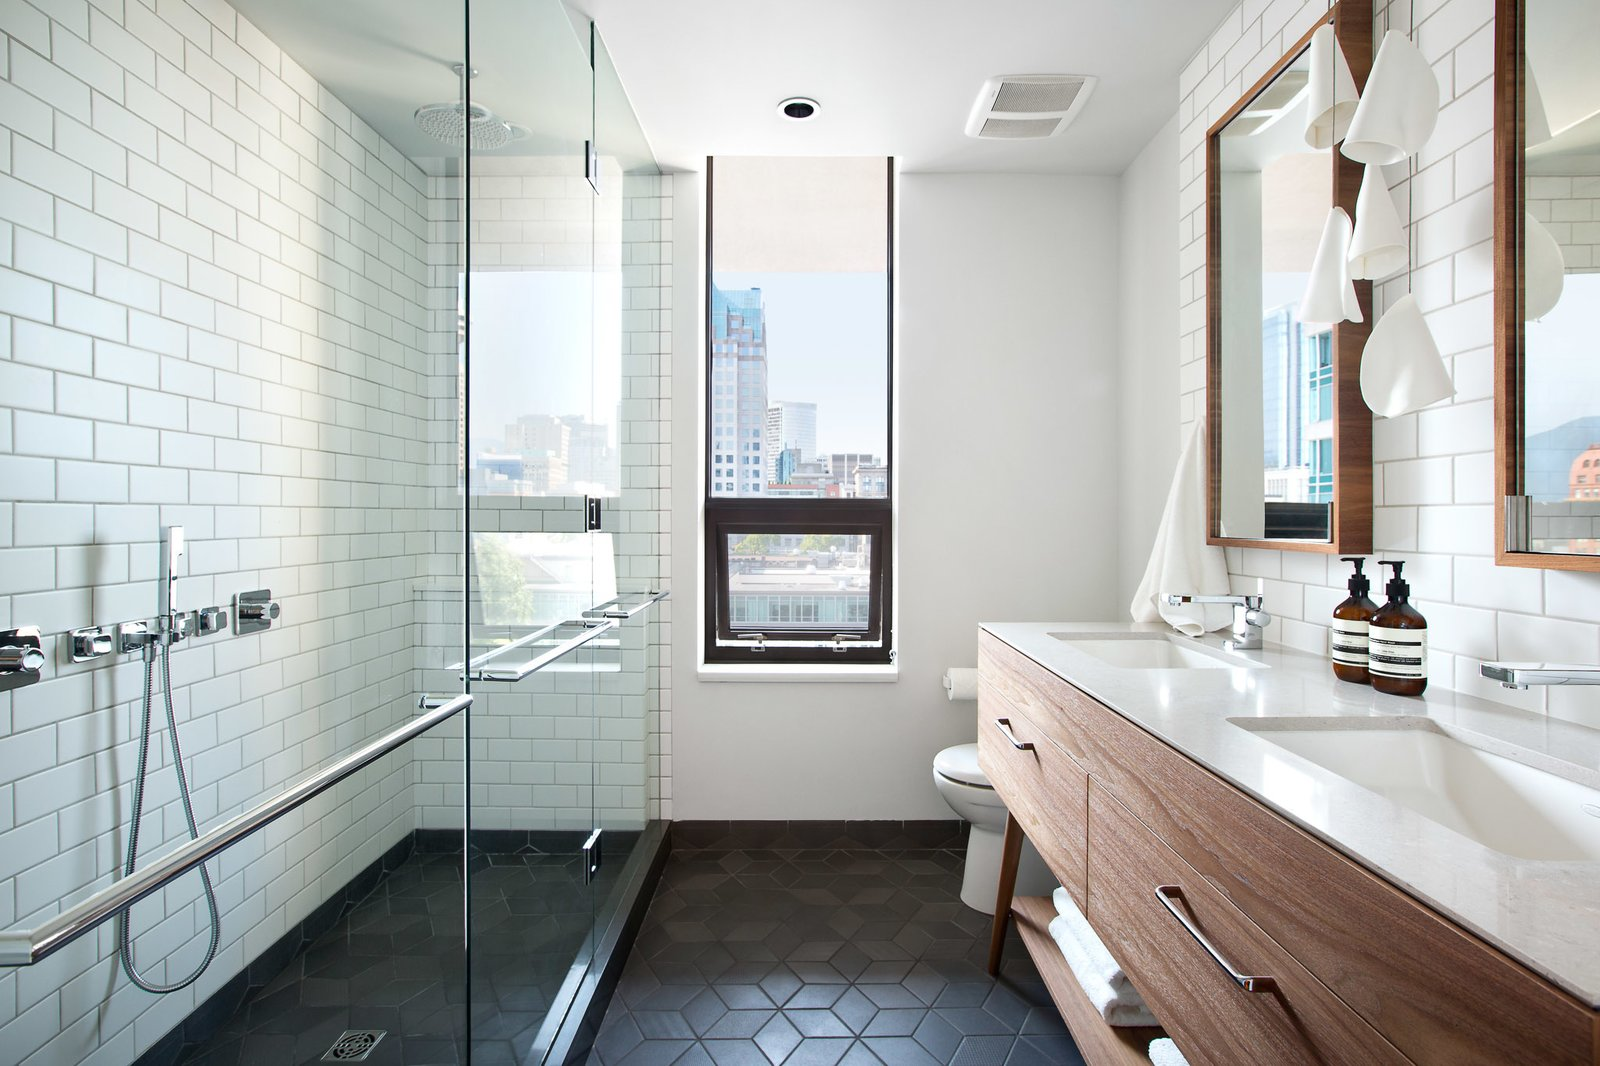 Bath, Subway Tile, Ceramic Tile, Undermount, Engineered Quartz, Ceiling, Pendant, and Enclosed Tex floor tile from Mutina, Custom walnut vanity, Bocci 21.5 pendant  Bath Engineered Quartz Ceramic Tile Pendant Photos from Beatty Street Loft